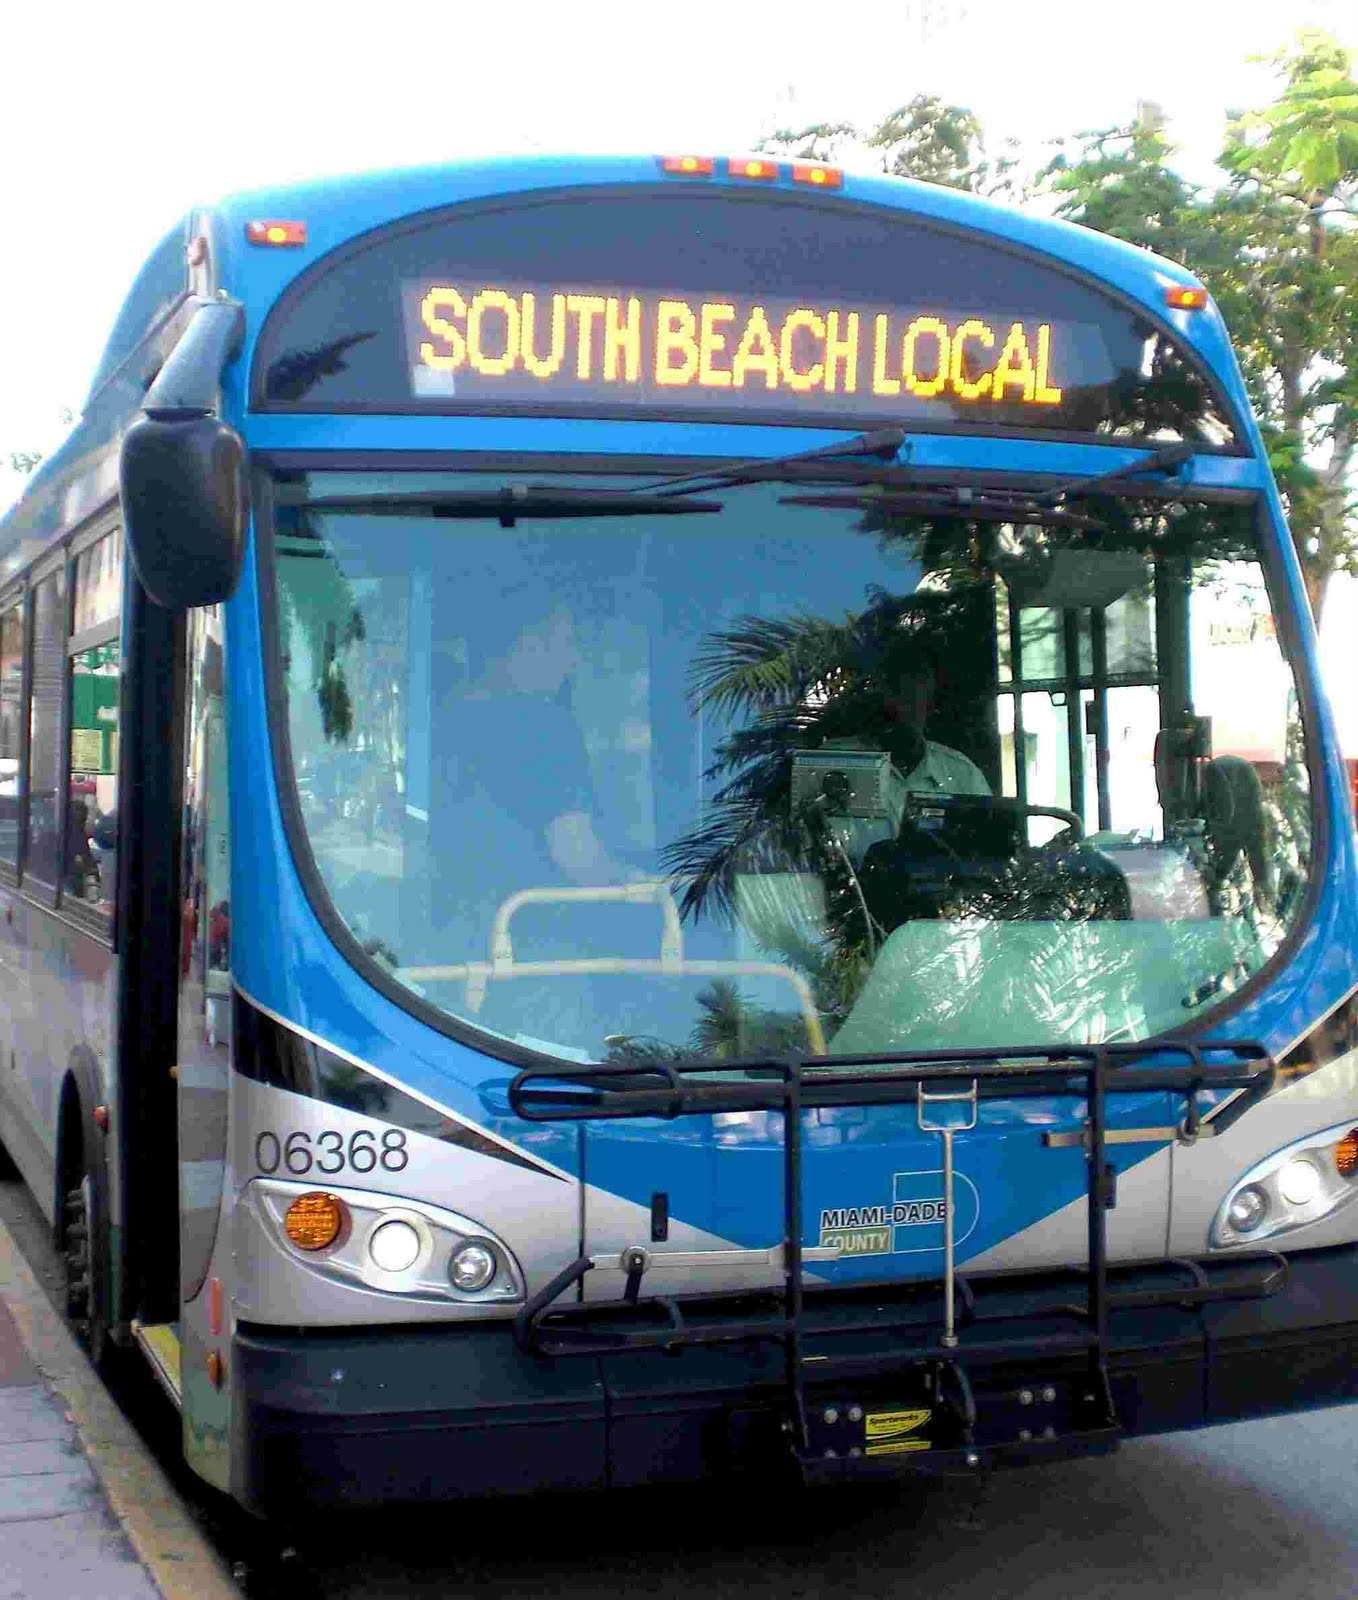 South Beach Local Bus Washington Avenue Miami Dade Transit